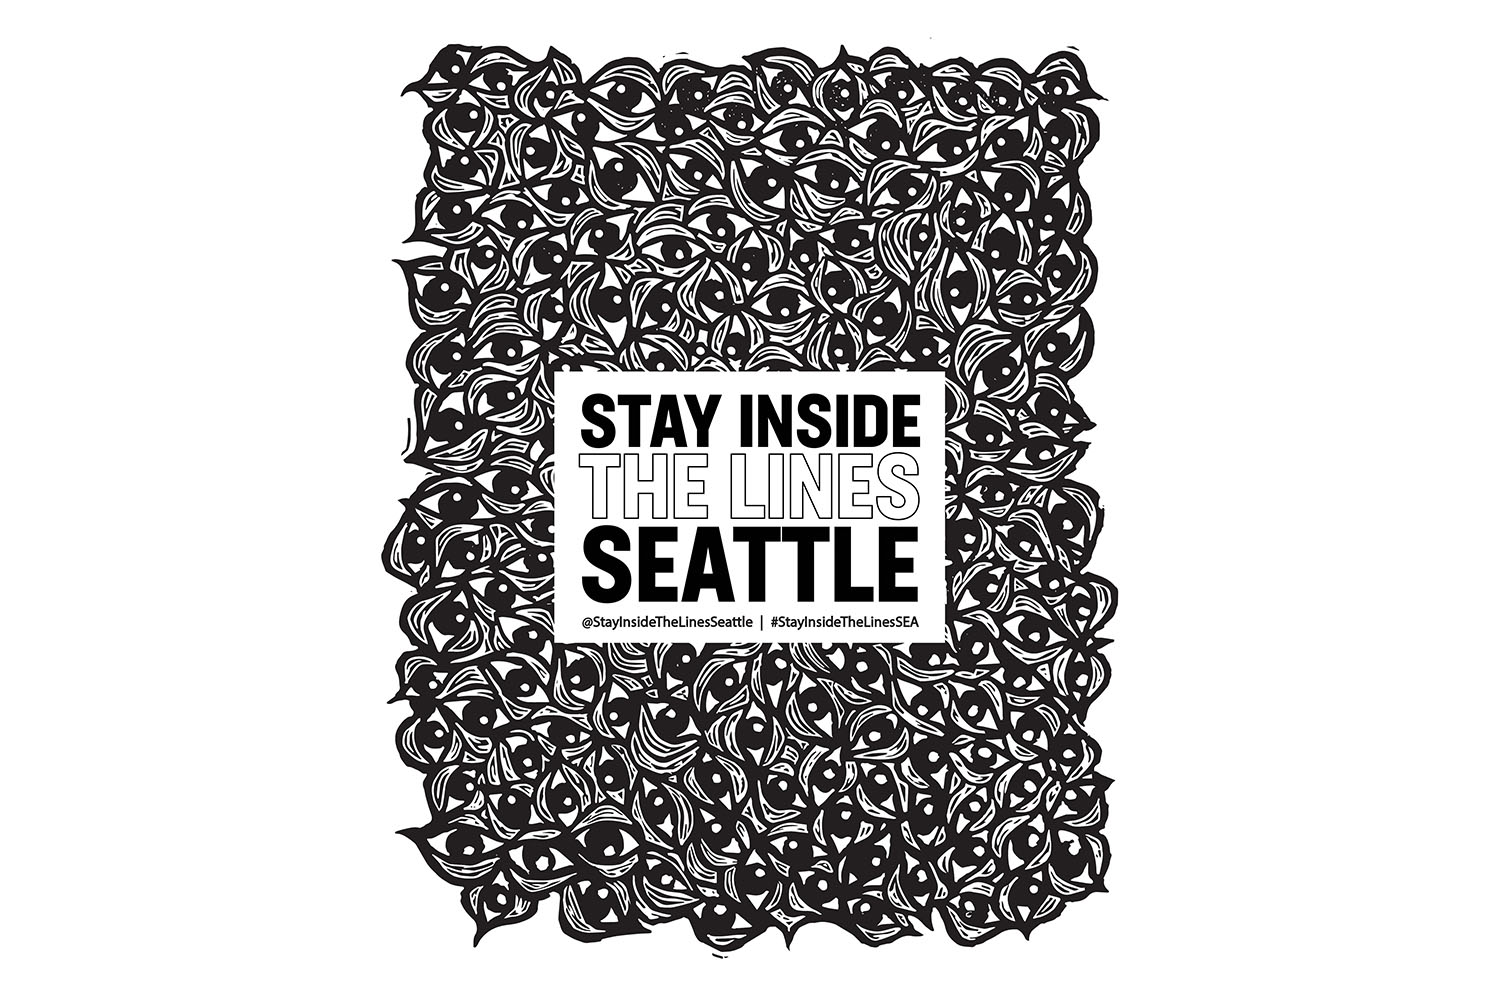 "Whether you're looking for something other than Netflix to do or something to keep your little ones entertained, what better way to pass the time than to color?! Artists in Seattle have created free coloring pages you can download and print right at home! You can not only get to know some local artists but also keep your mind engaged in a different way during quarantine. Pages can be downloaded from{&nbsp;}<a  href=""https://stayinsidethelines.co/"" target=""_blank"">stayinsidethelines.co</a>. Make sure to tag{&nbsp;}<a  href=""https://www.instagram.com/Stayinsidethelinesseattle/"" target=""_blank"">@StayInsideTheLinesSeattle{&nbsp;}</a>and use{&nbsp;}<a  href=""https://www.instagram.com/explore/tags/stayinsidethelinessea/"" target=""_blank"">#STAYINSIDETheLinesSEA{&nbsp;}</a>when posting to social media! (Image: Stay Inside the Lines Seattle)"